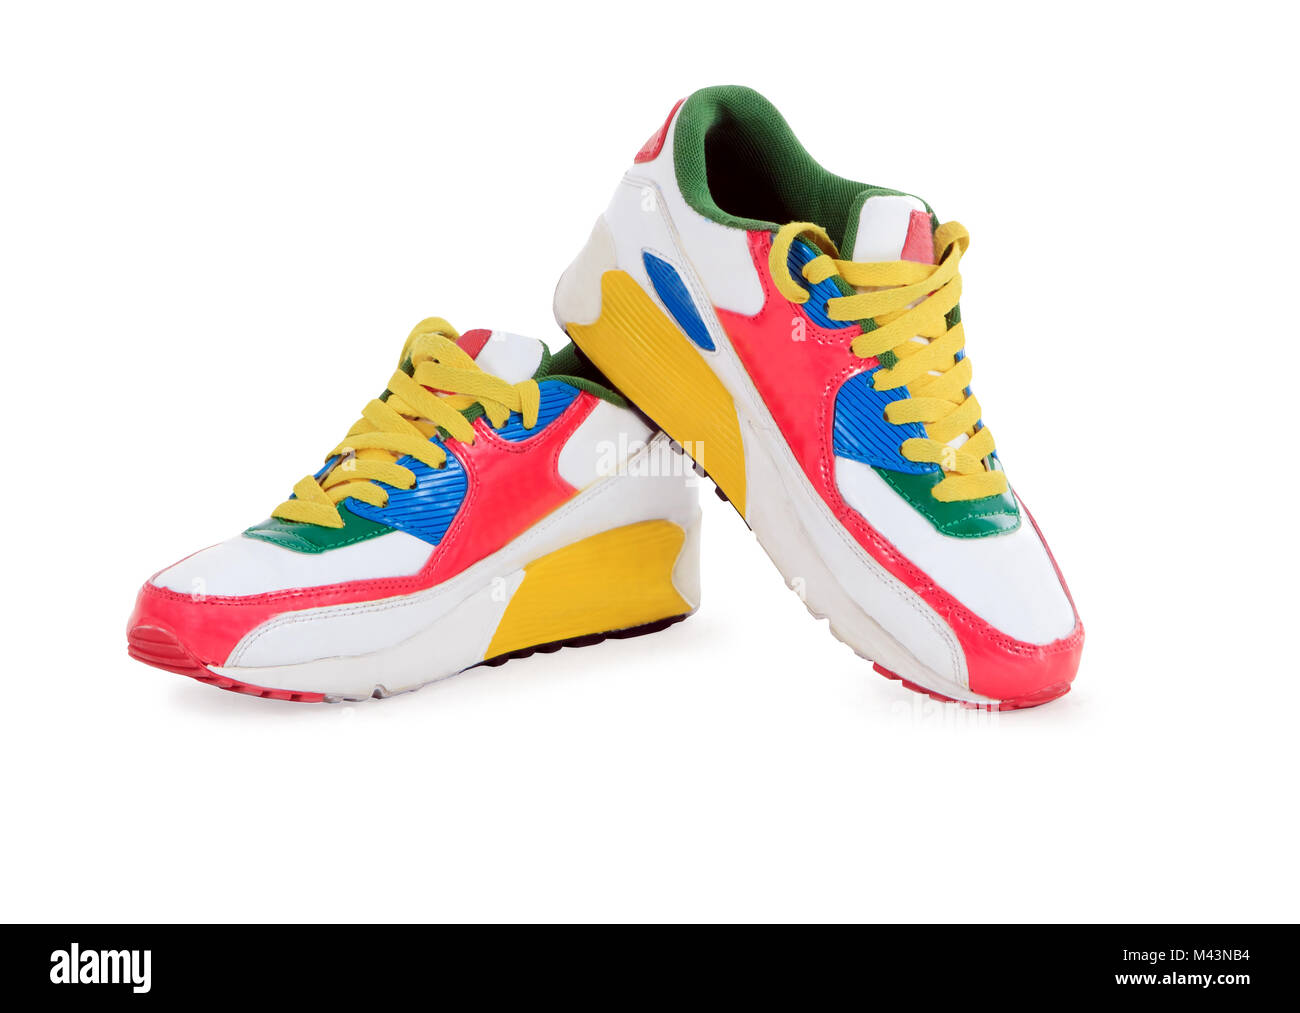 Sport shoes pair on a white background Stock Photo